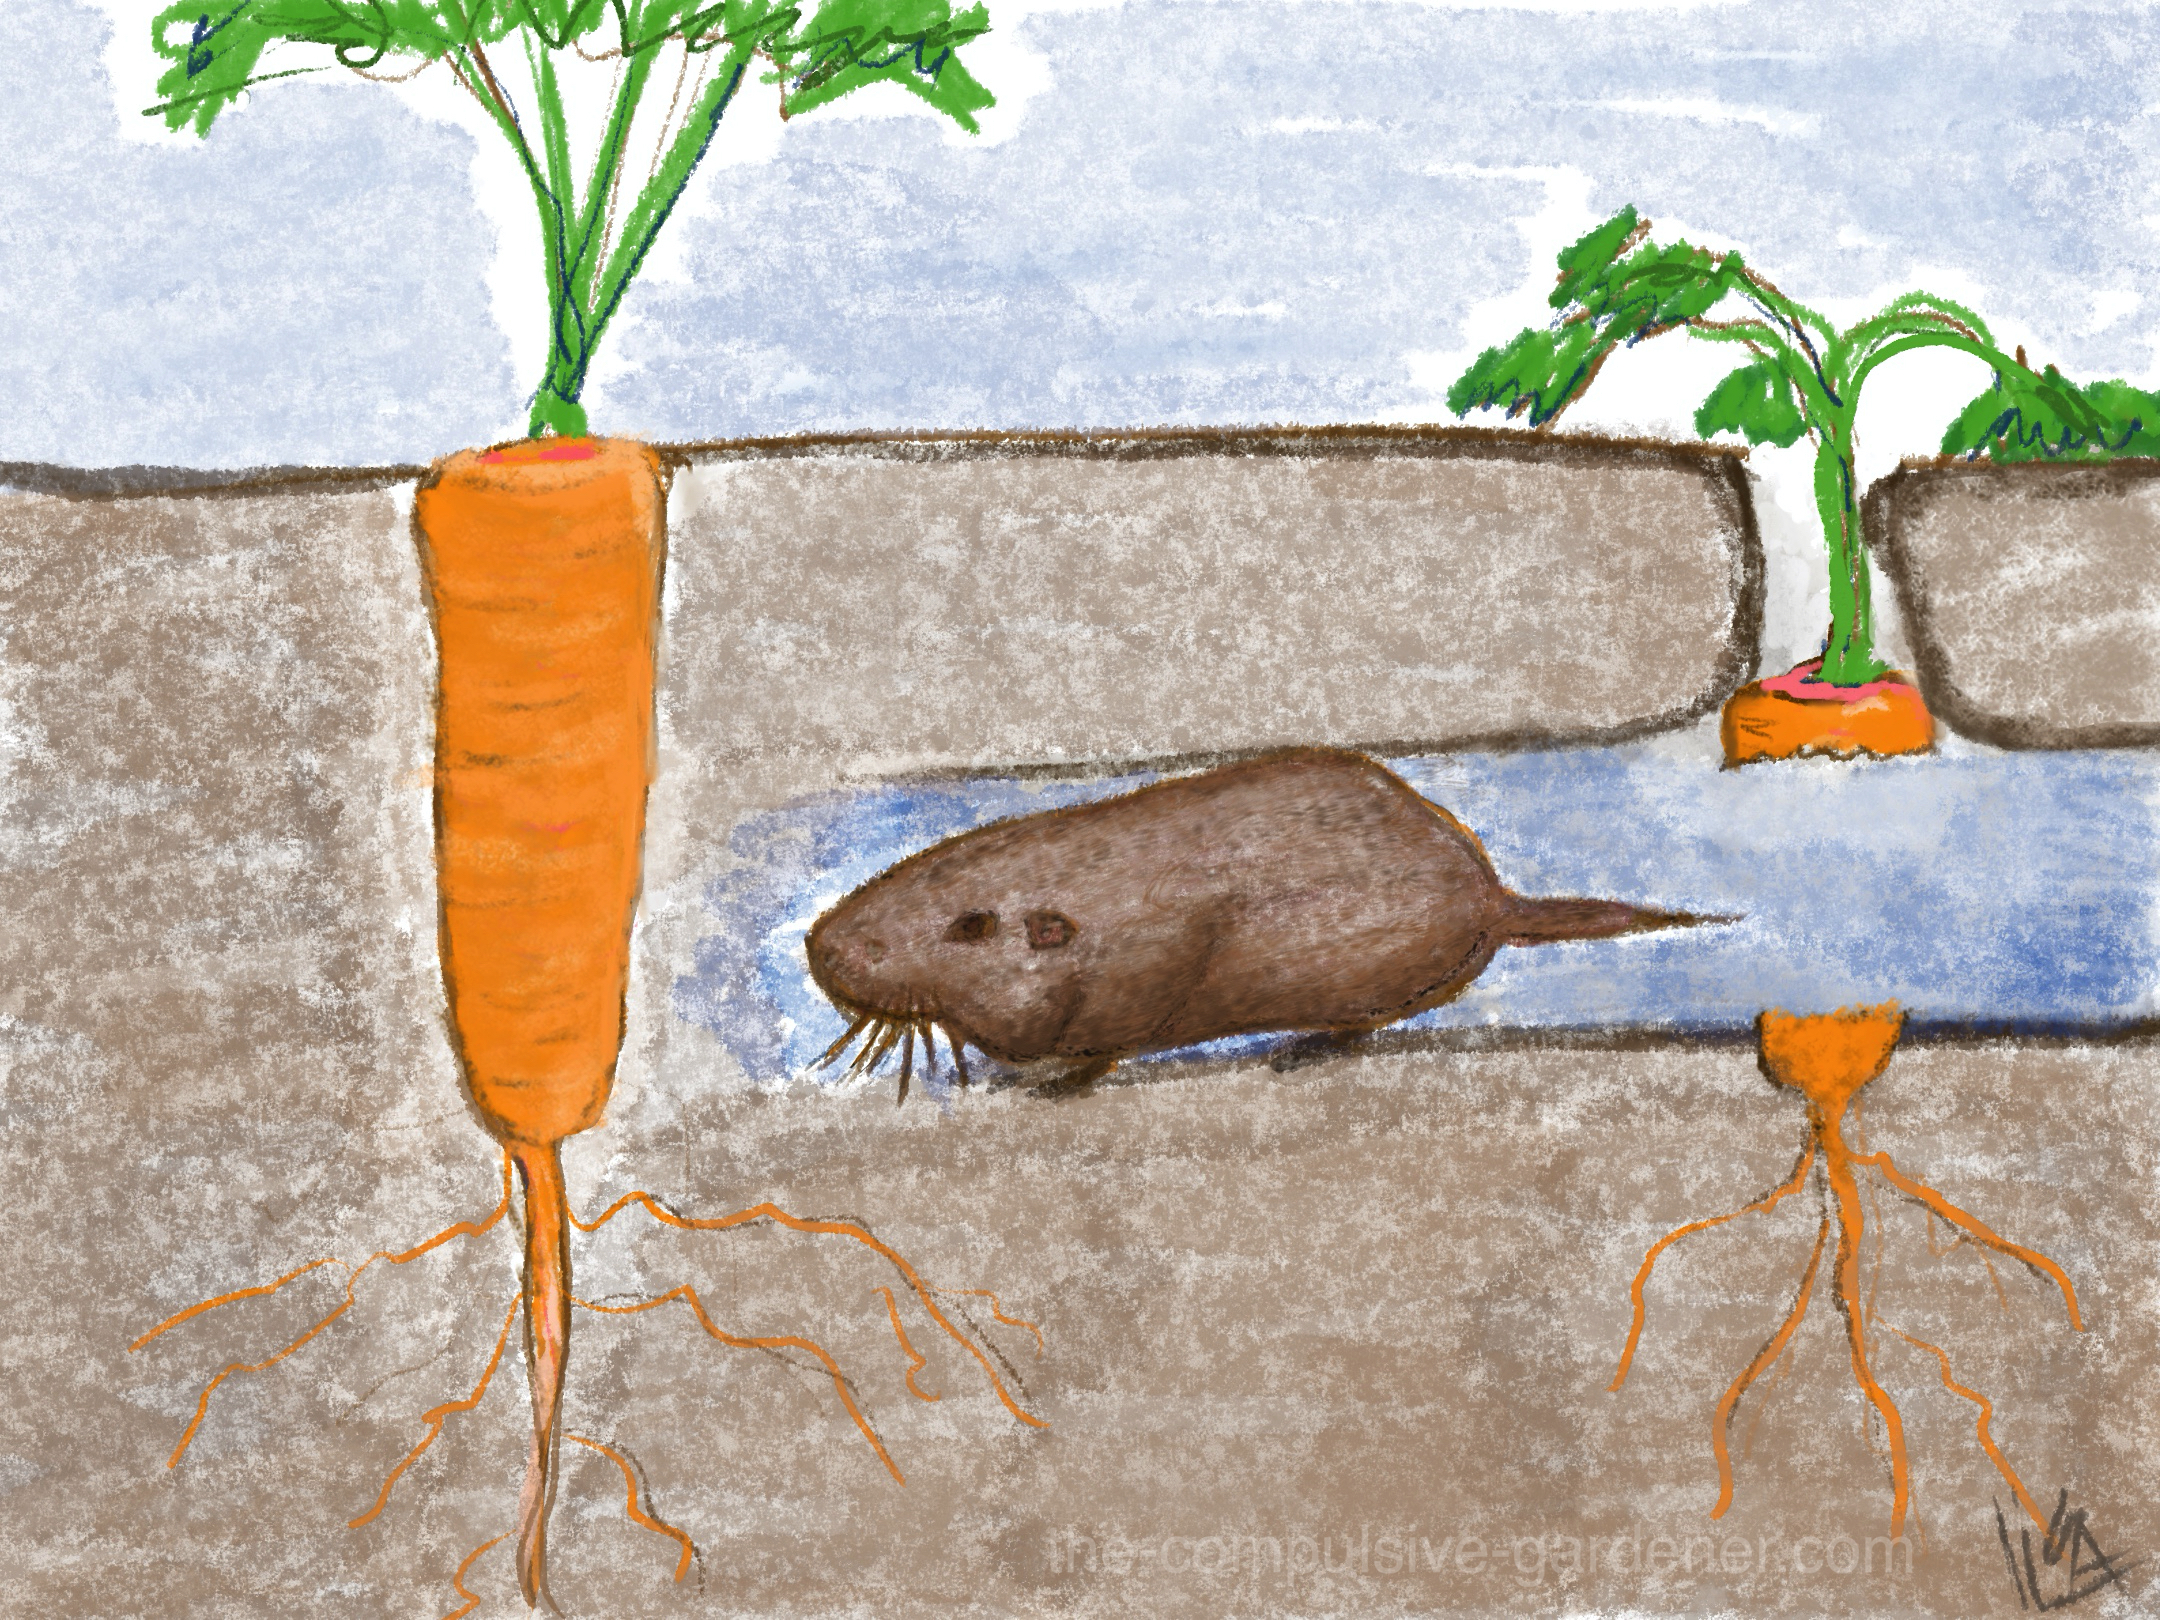 Drawing of gopher eating garden carrots underground